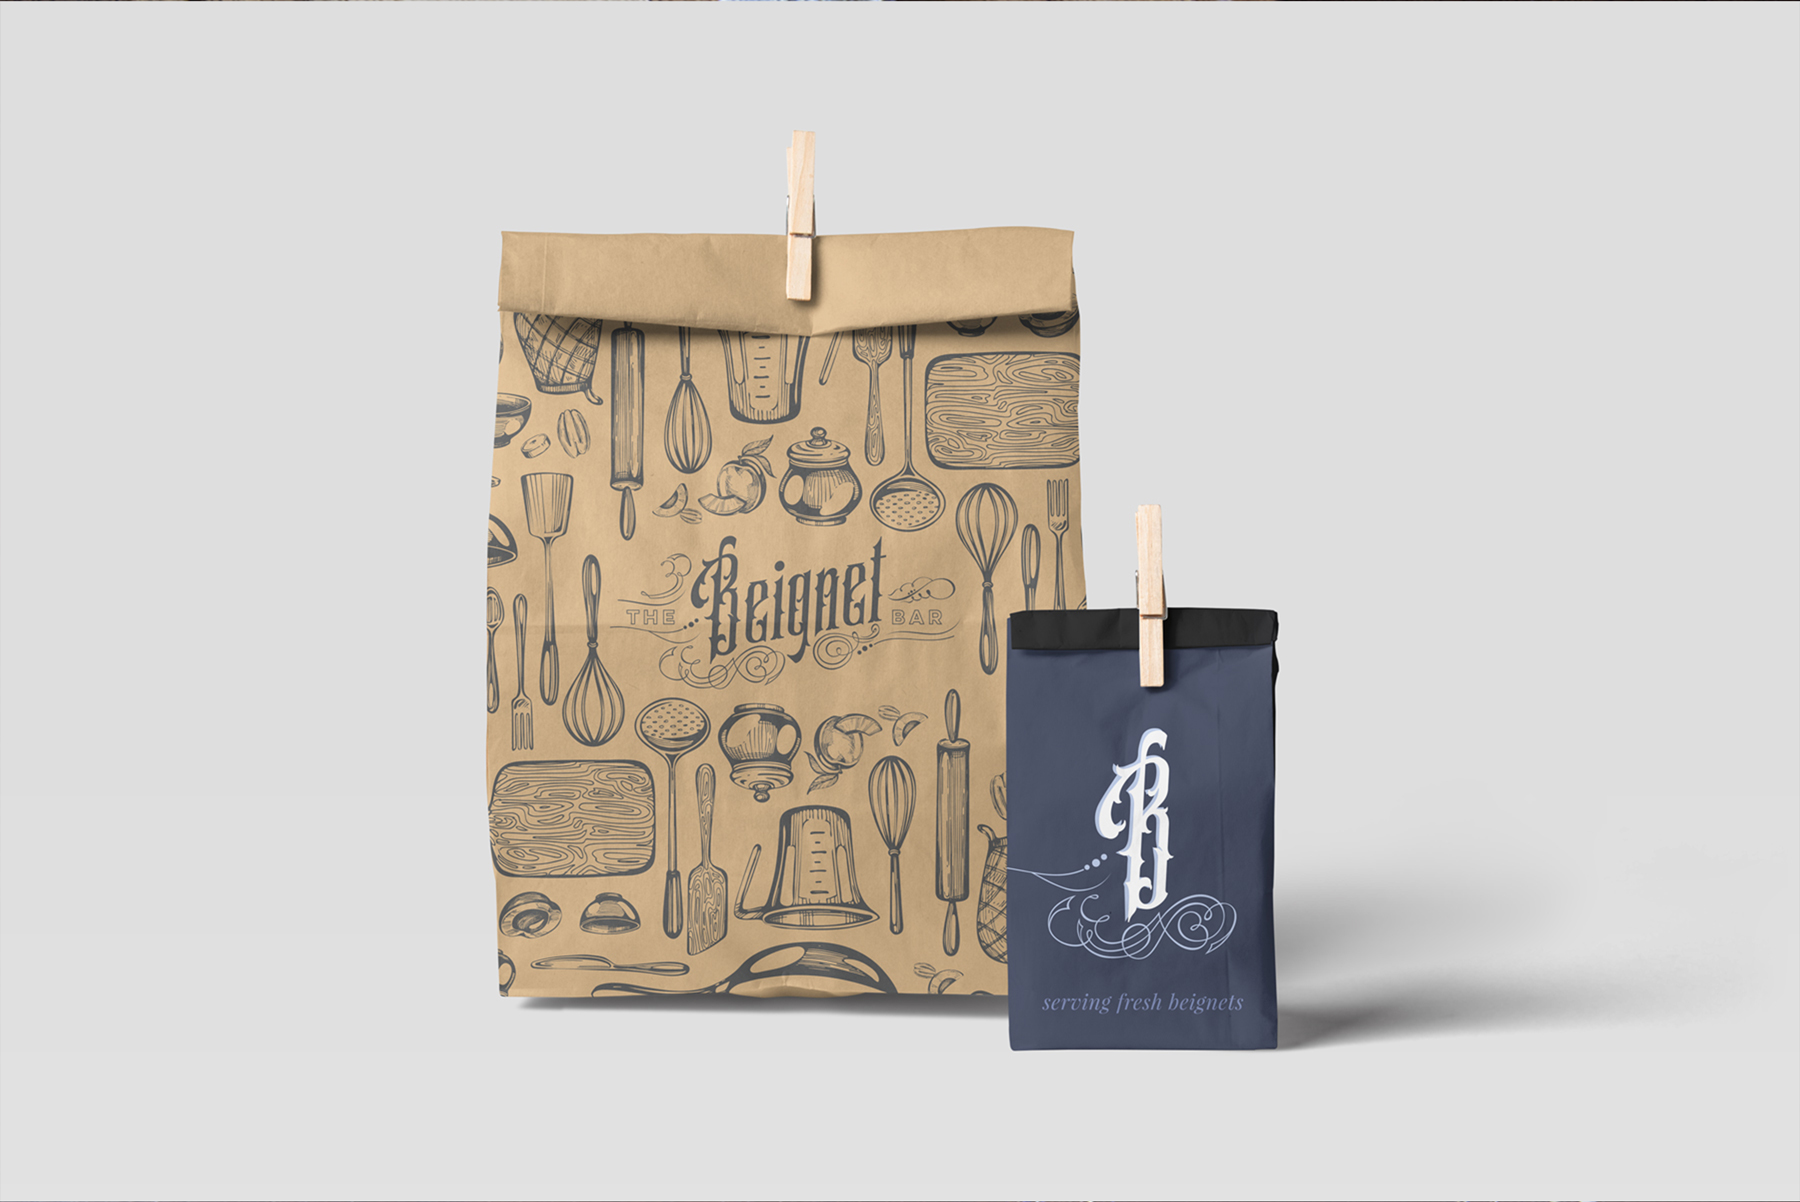 Packaging for The Beignet Bar designed by Hire Henri Creative in Chicago Illinois